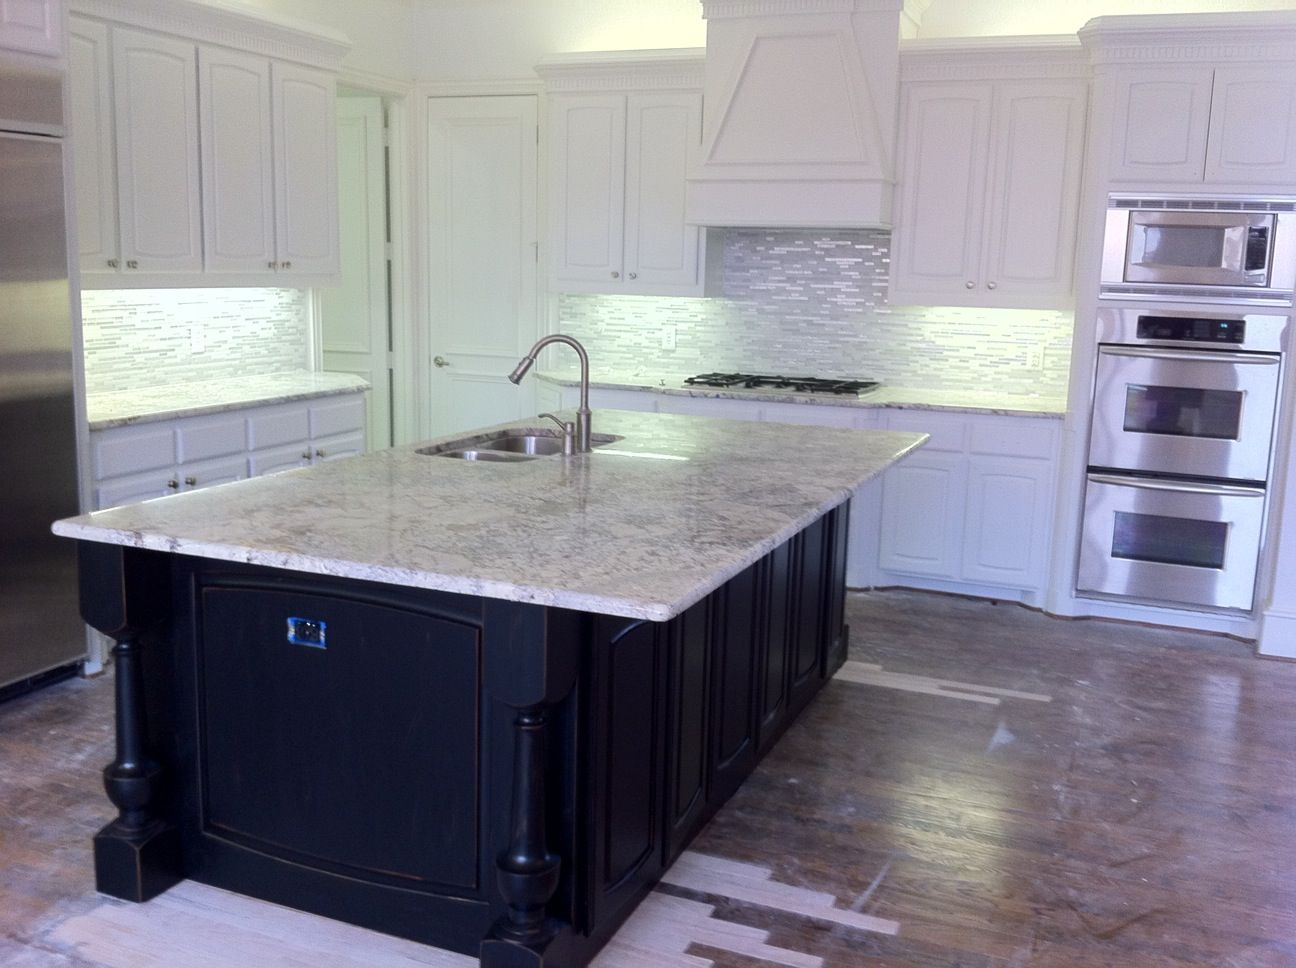 Cultured marble kitchen countertops - Carrera Marble Countertop With Black Cabinets Carrera Marble Glass Tile Backsplash White Kitchen